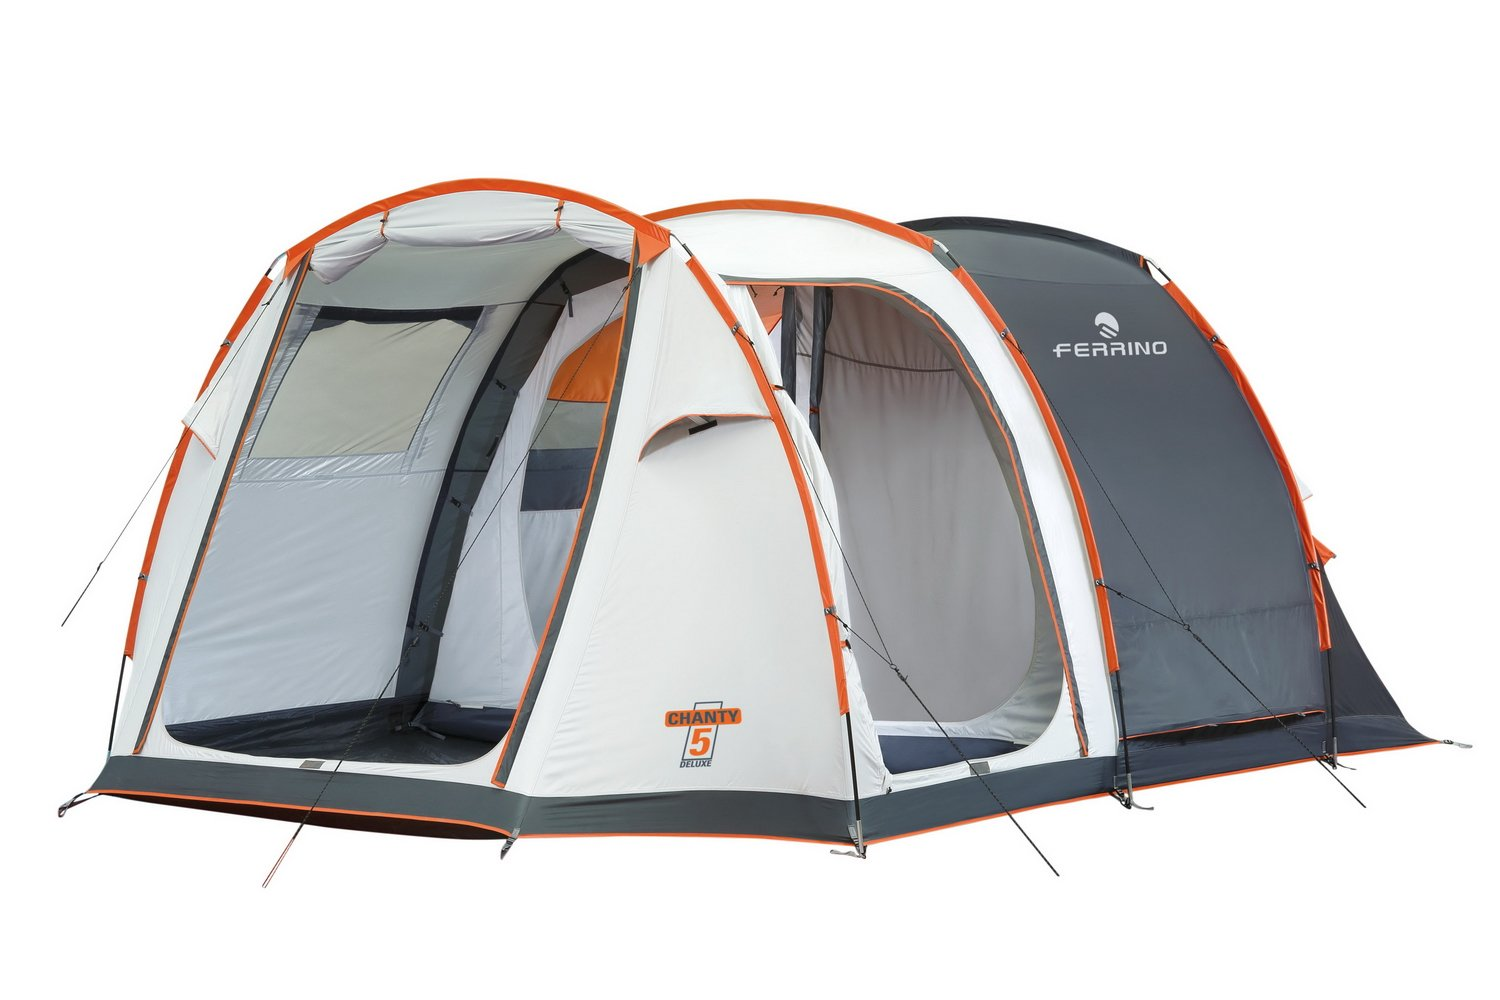 Ferrino Chanty 5 Deluxe Family - Camping Tends with Tunnel - Size 5 - Blue